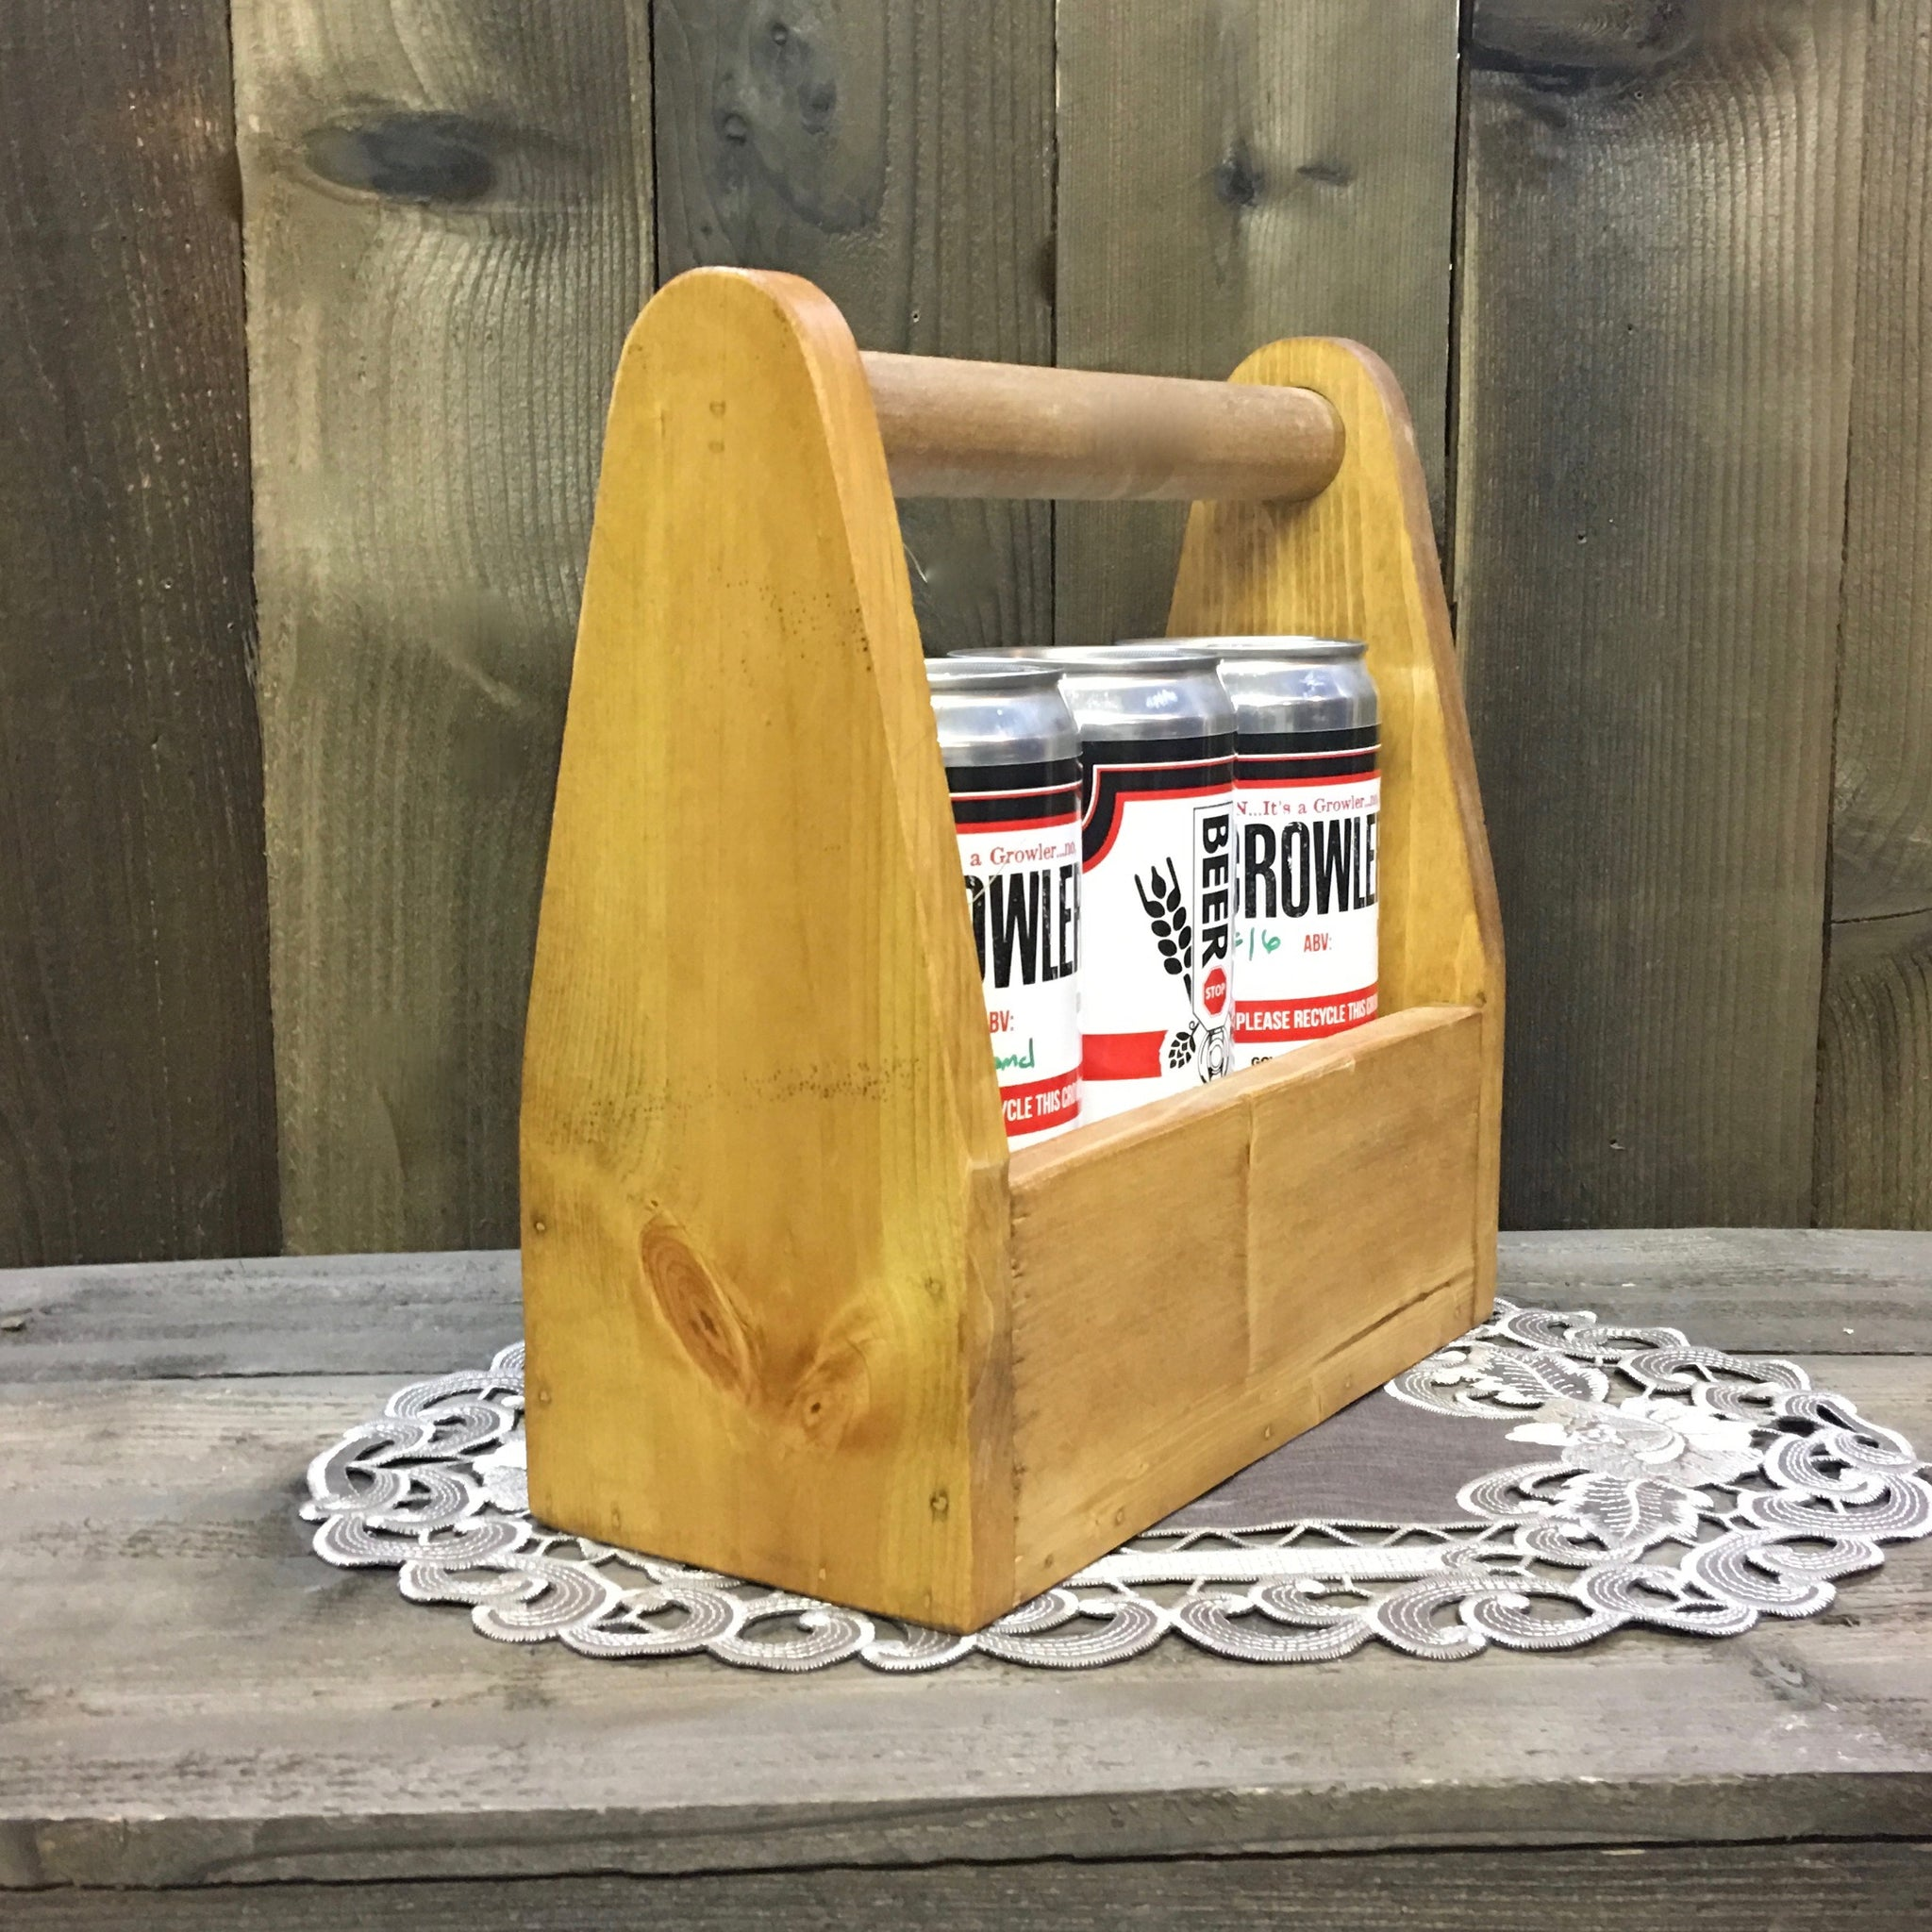 Plain and Simple Crowler Can Carrier - As Shown Holds Three 32oz Crowler Cans - Other Sizes Available